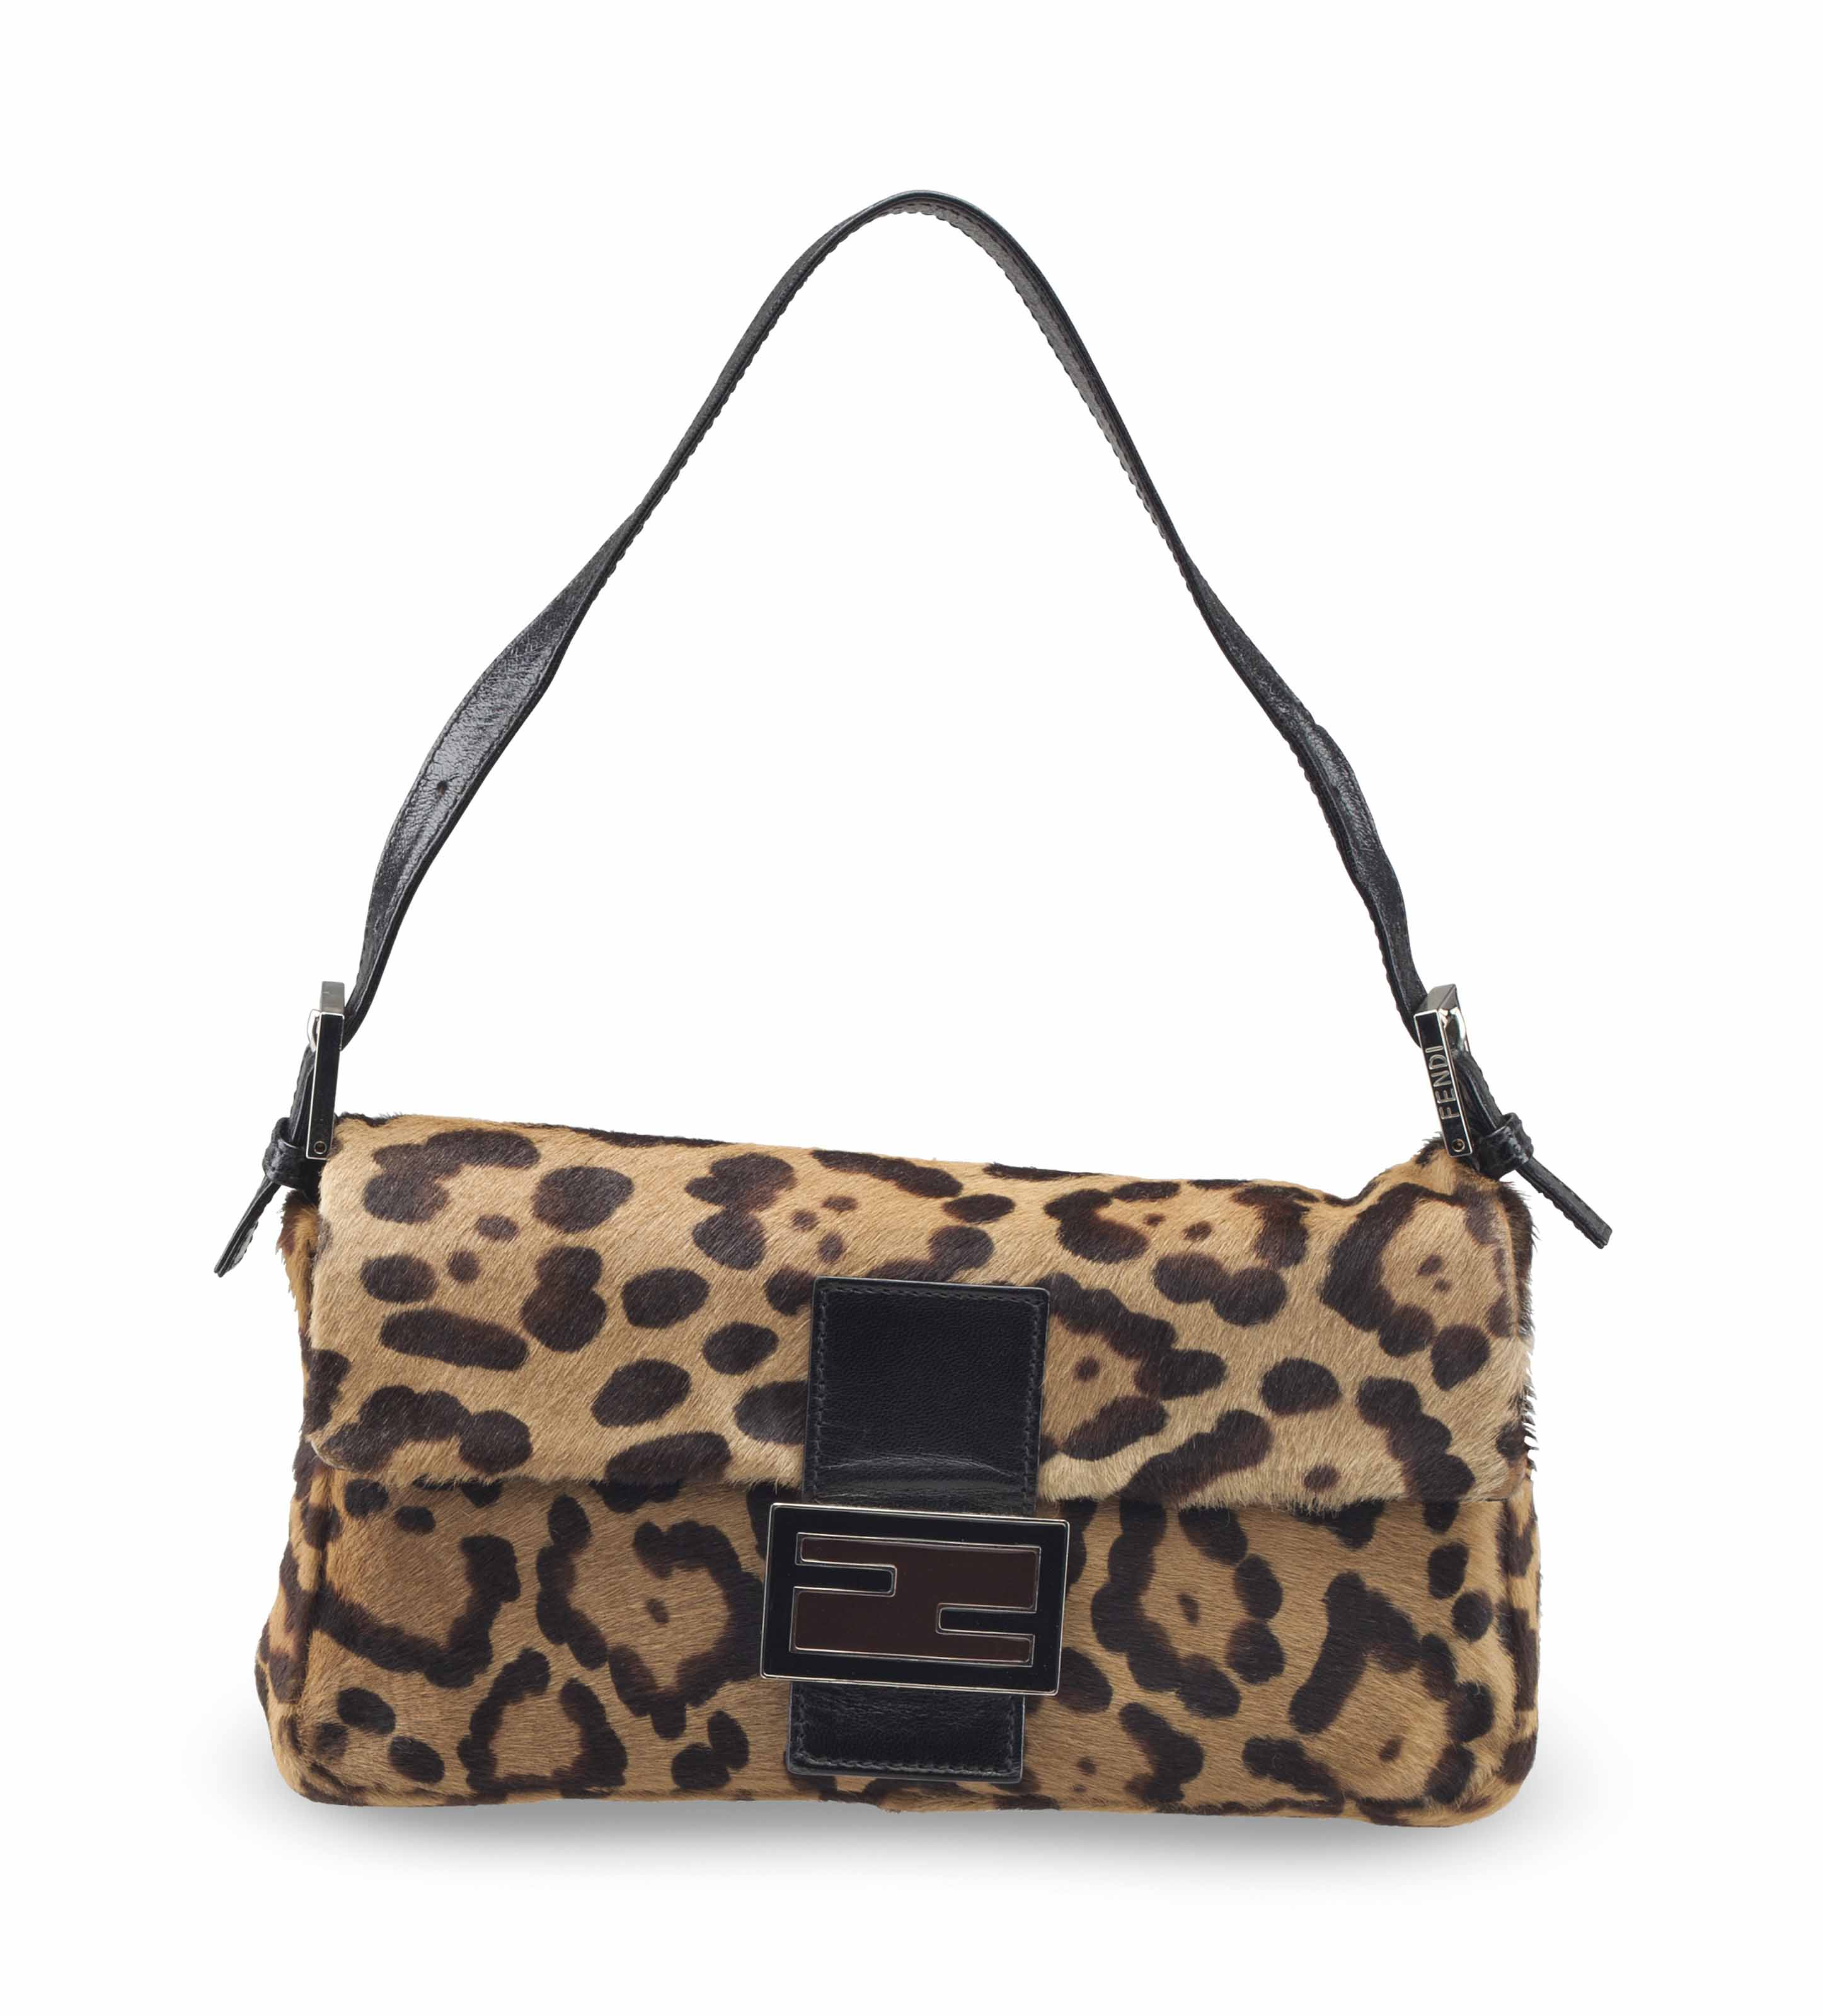 73761fe693c4 A LEOPARD PRINT PONY HAIR BAGUETTE WITH SILVER HARDWARE